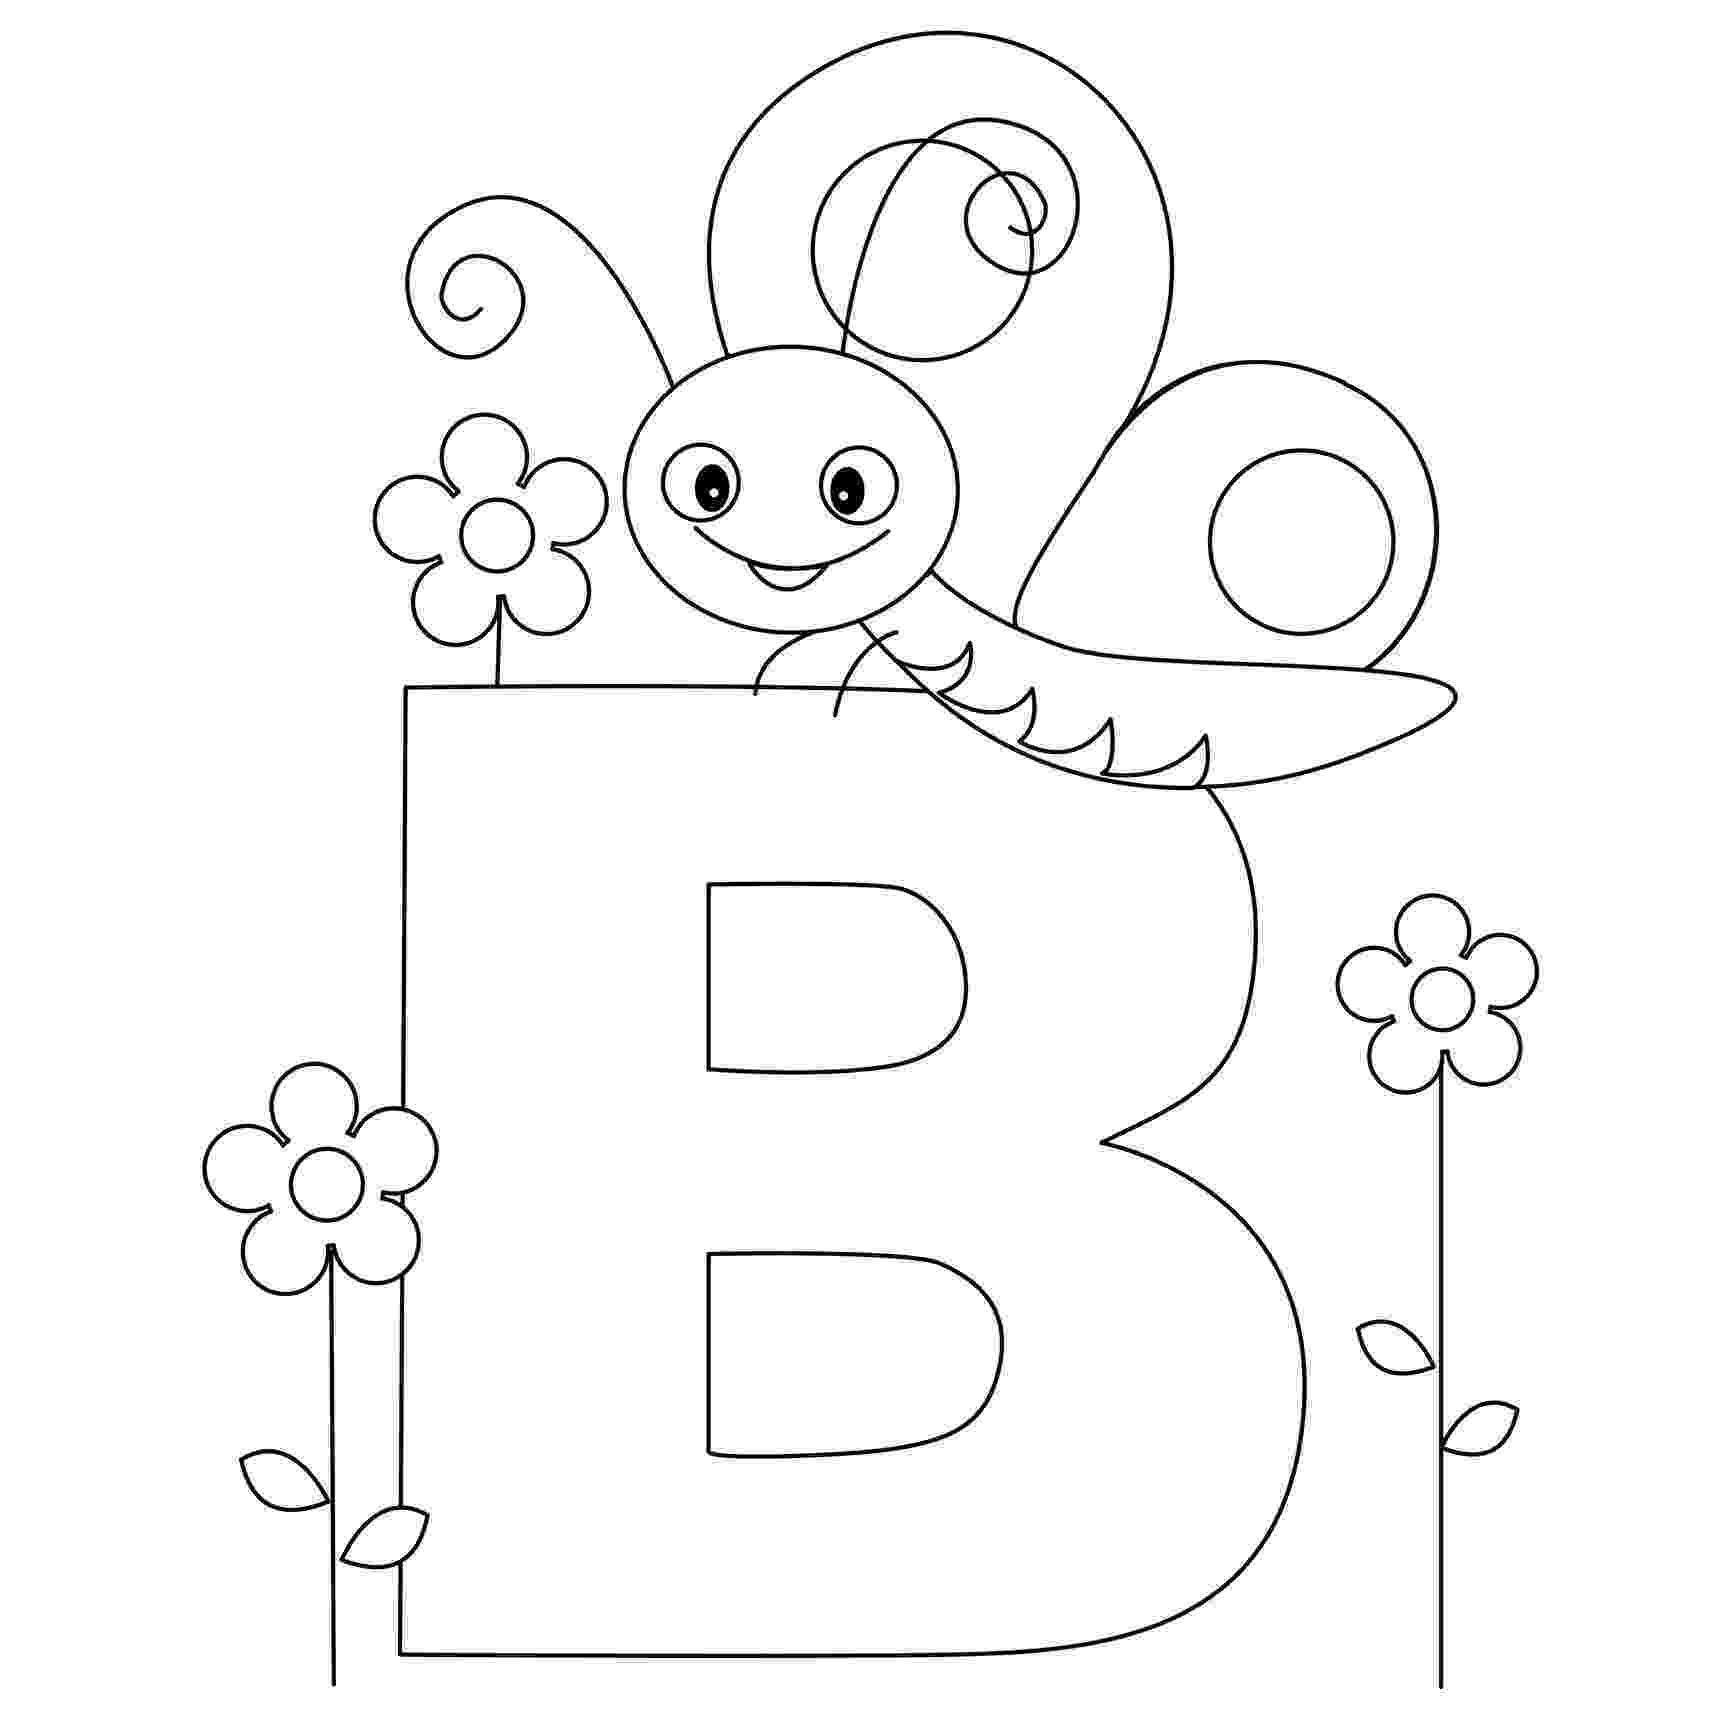 coloring alphabet letters free printable alphabet coloring pages for kids best alphabet letters coloring